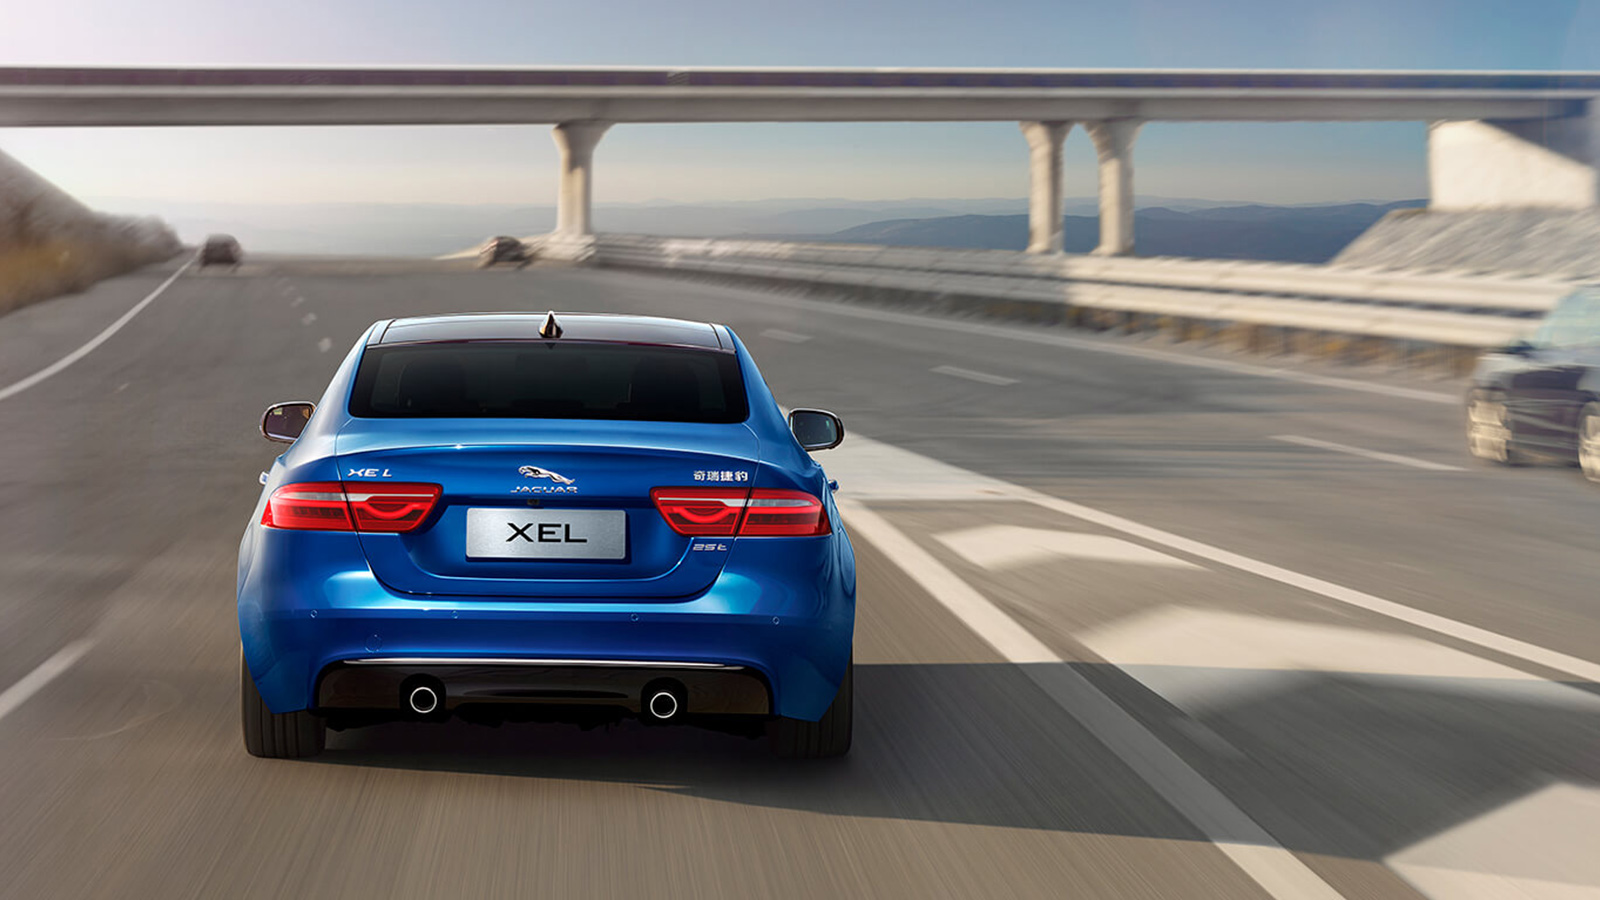 Rear view of a Blue Jaguar XEL driving on a highway.